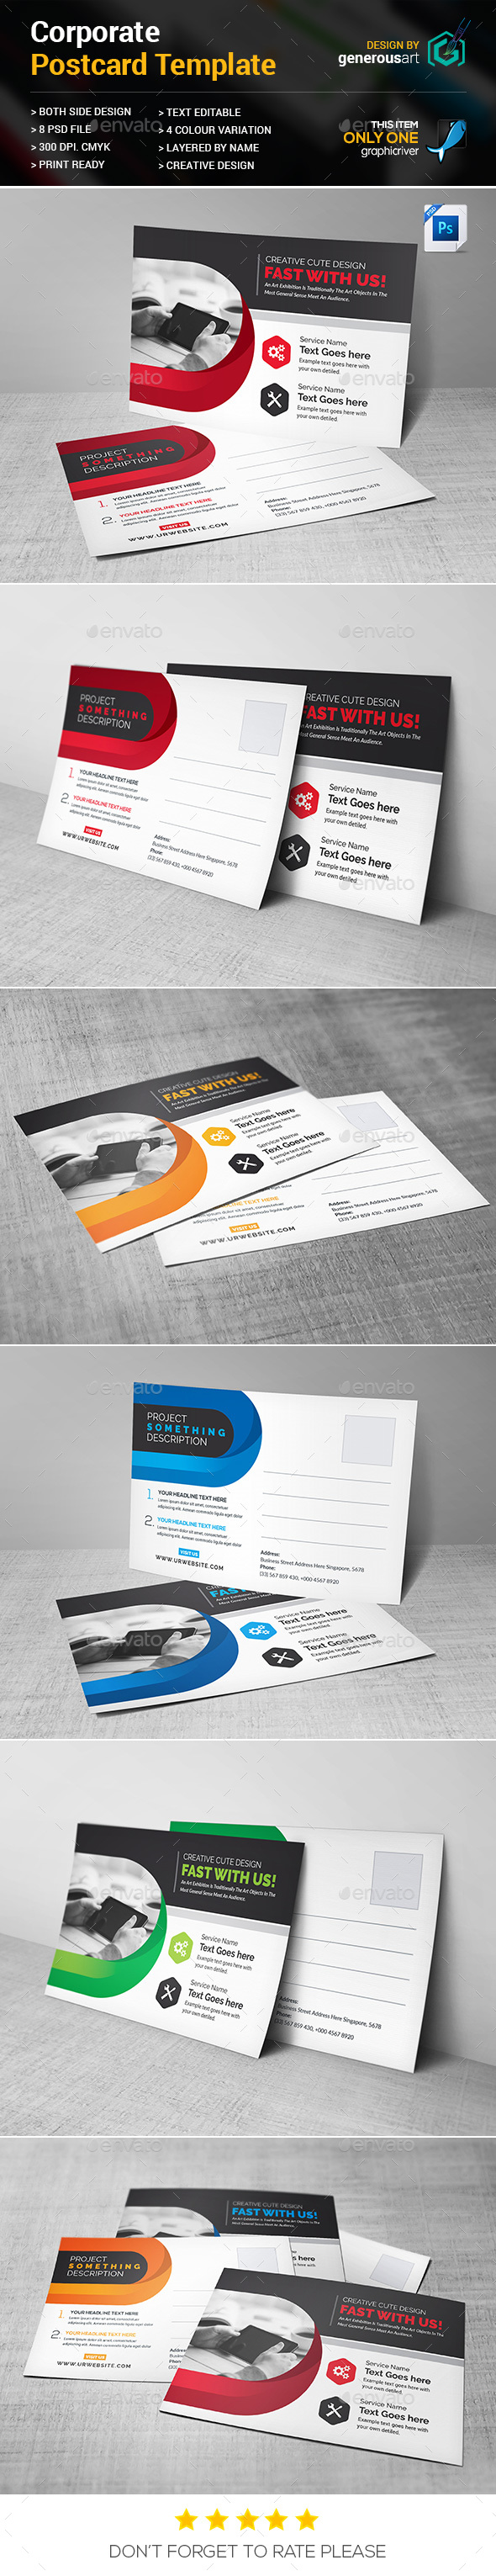 Corporate Postcard - Cards & Invites Print Templates